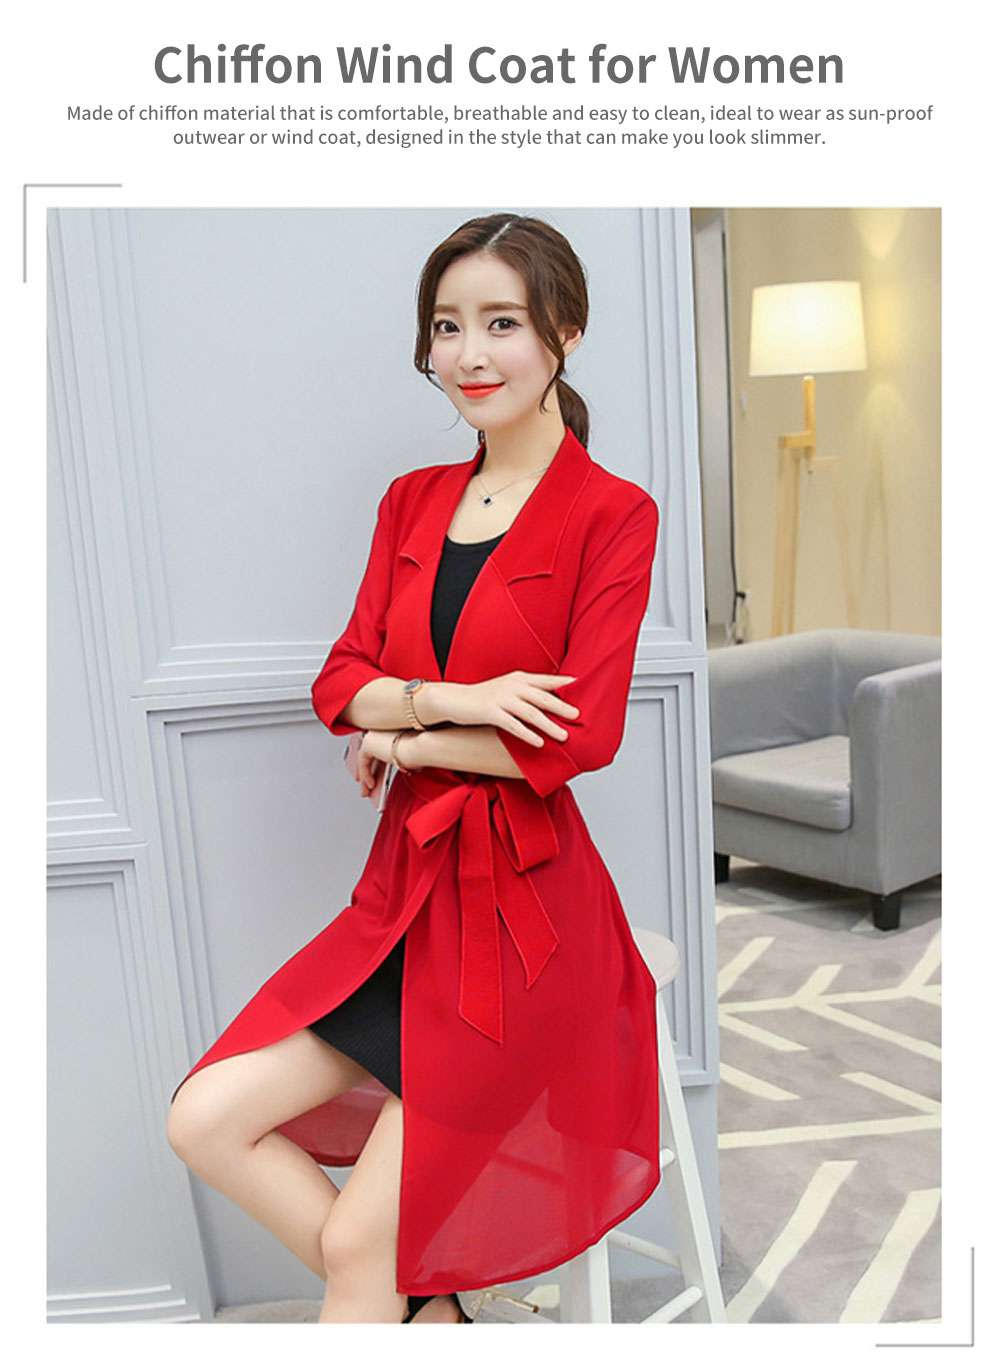 Lady Chiffon Wind Coat Mid-long Sun-proof Wind-proof Coat Sun Coat Thin Outwear with Waistband for Women 0